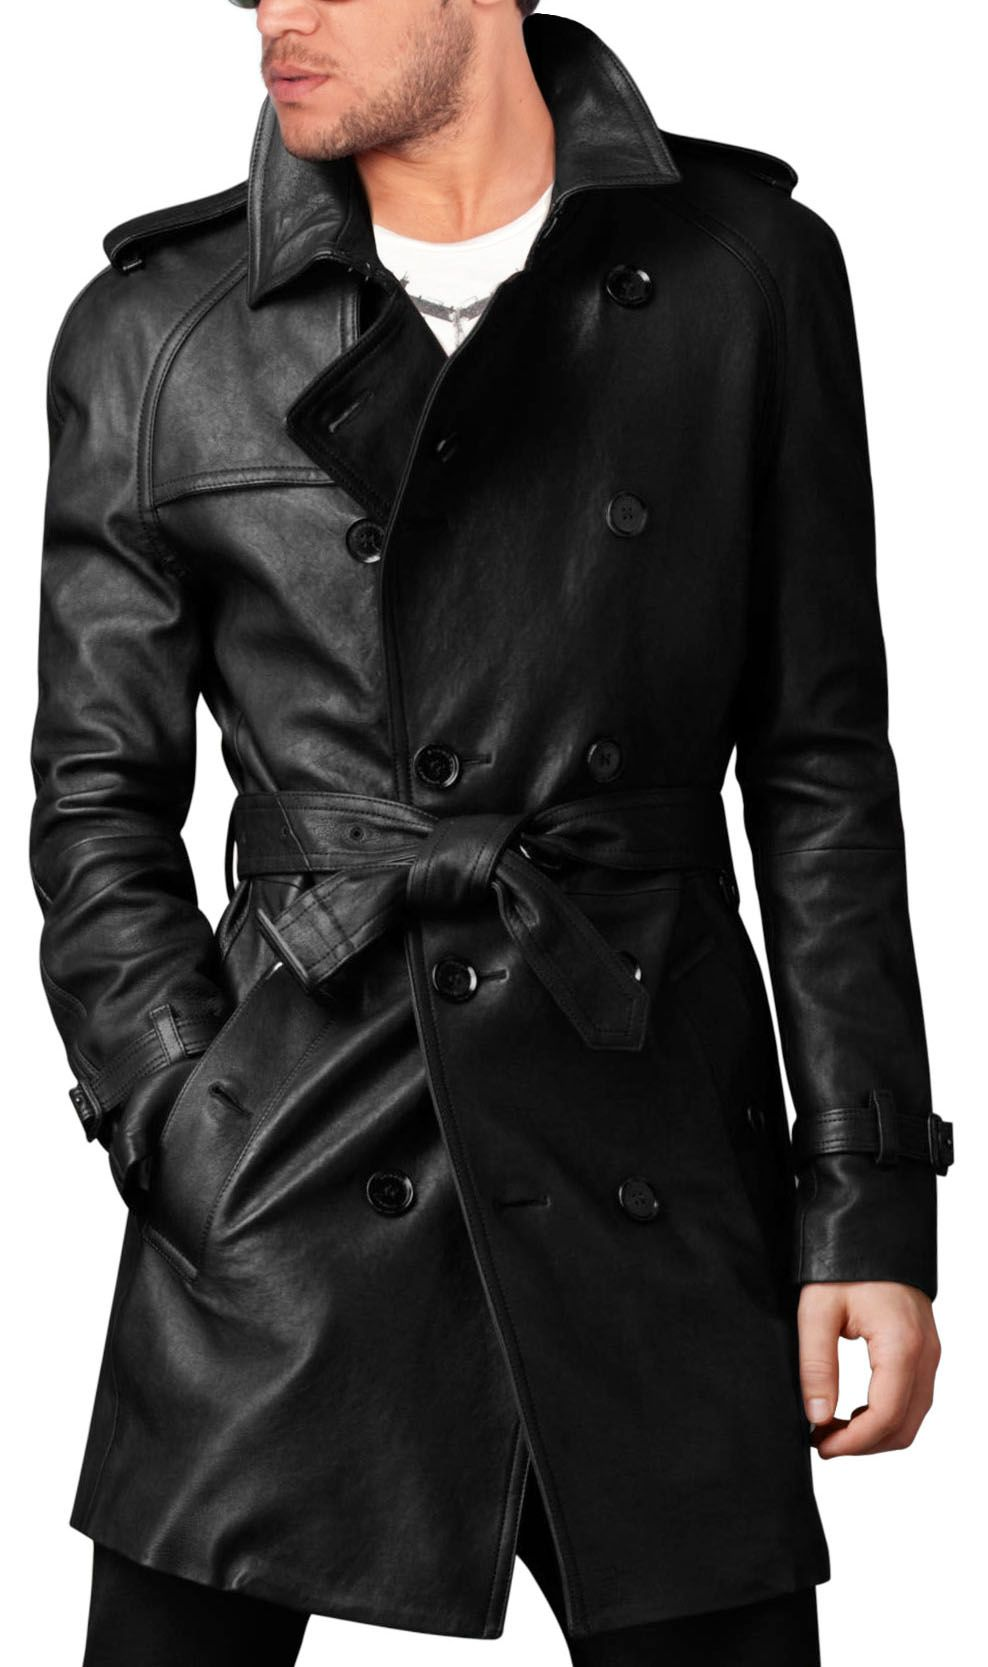 Buy modish belted mens leather trench coat online | Coats